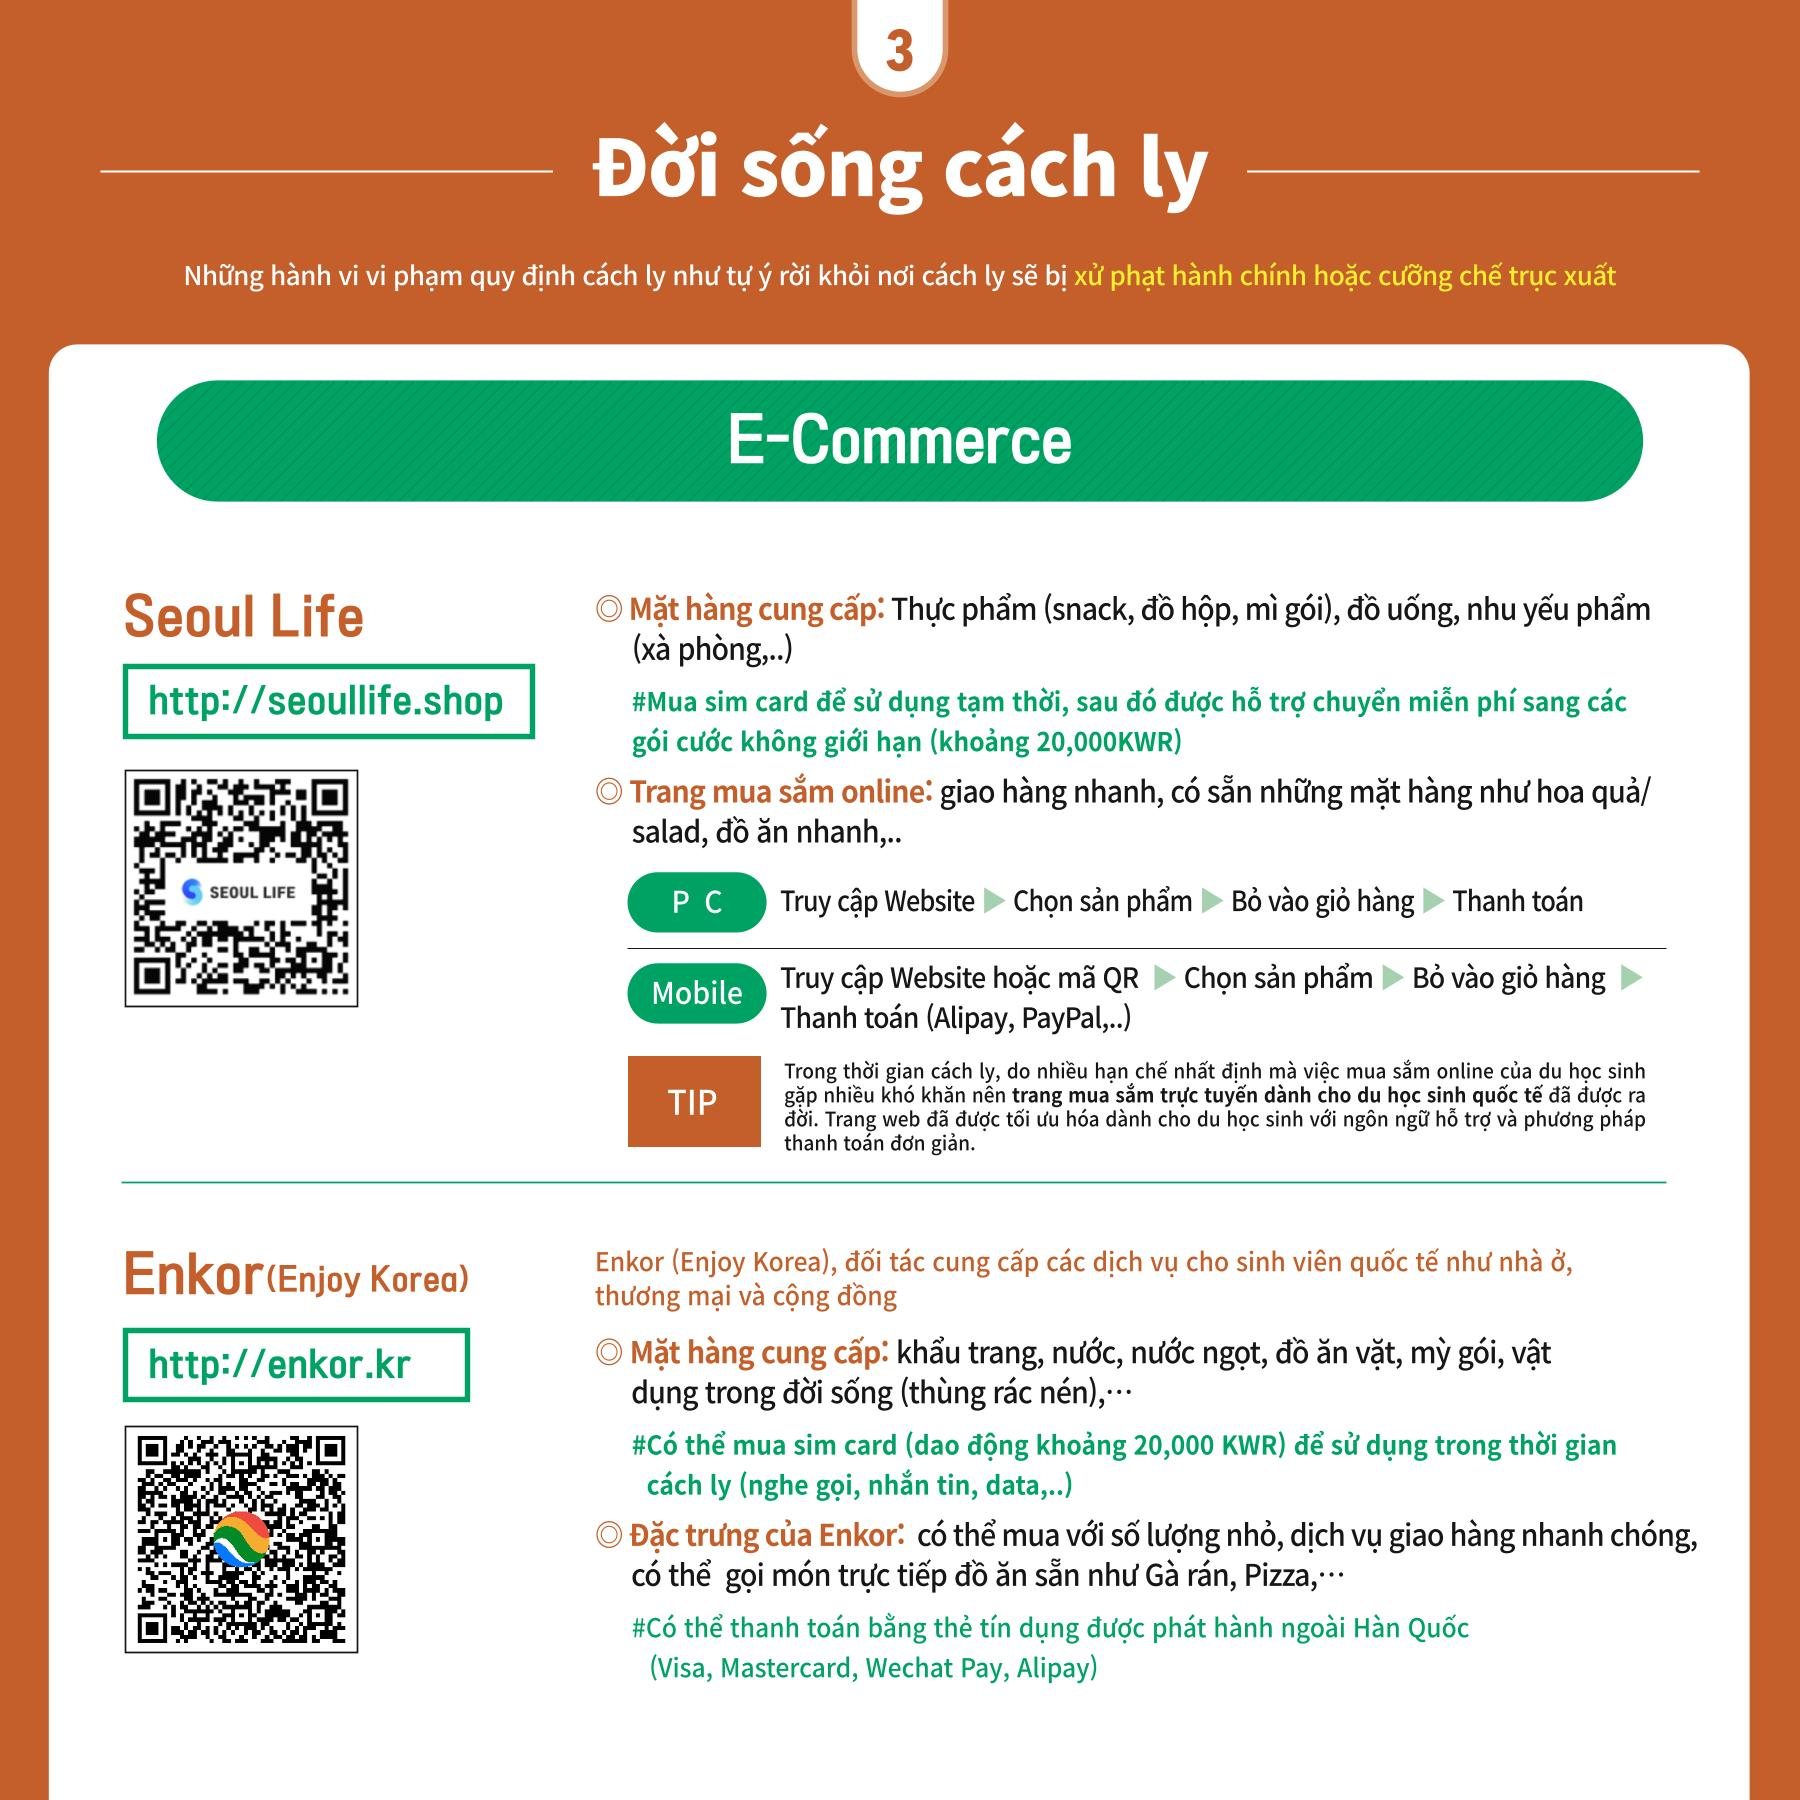 Huong dan cac quy dinh cach ly danh cho du hoc sinh pages 8